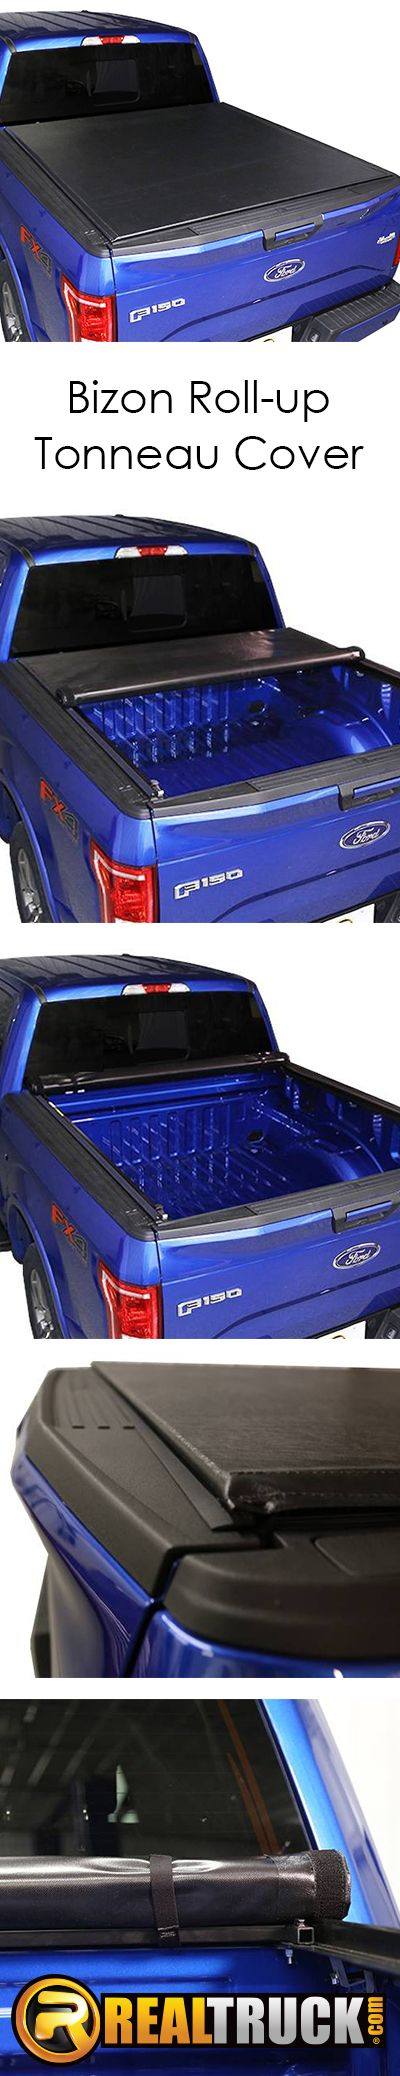 A truck bed cover is one of the most common items added to any pickup truck